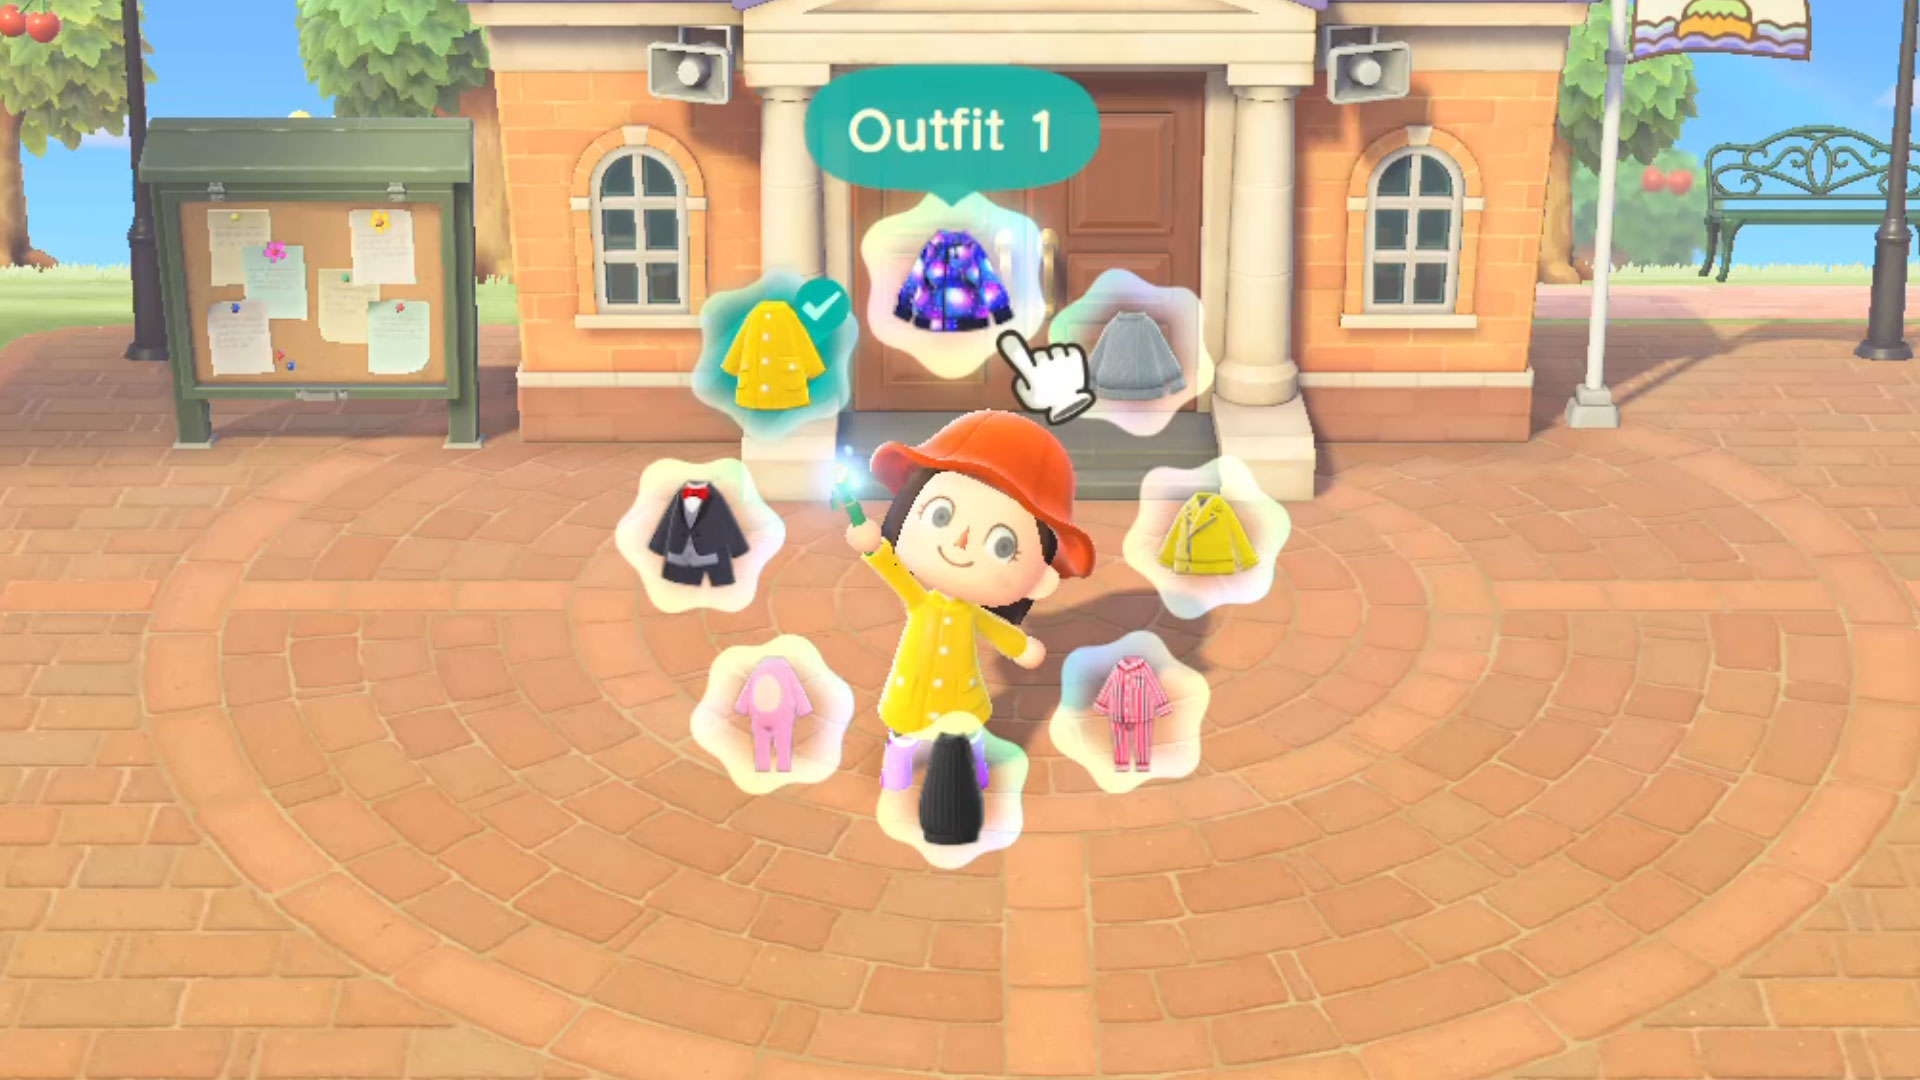 How to Get Light Sticks in Animal Crossing New Horizons?